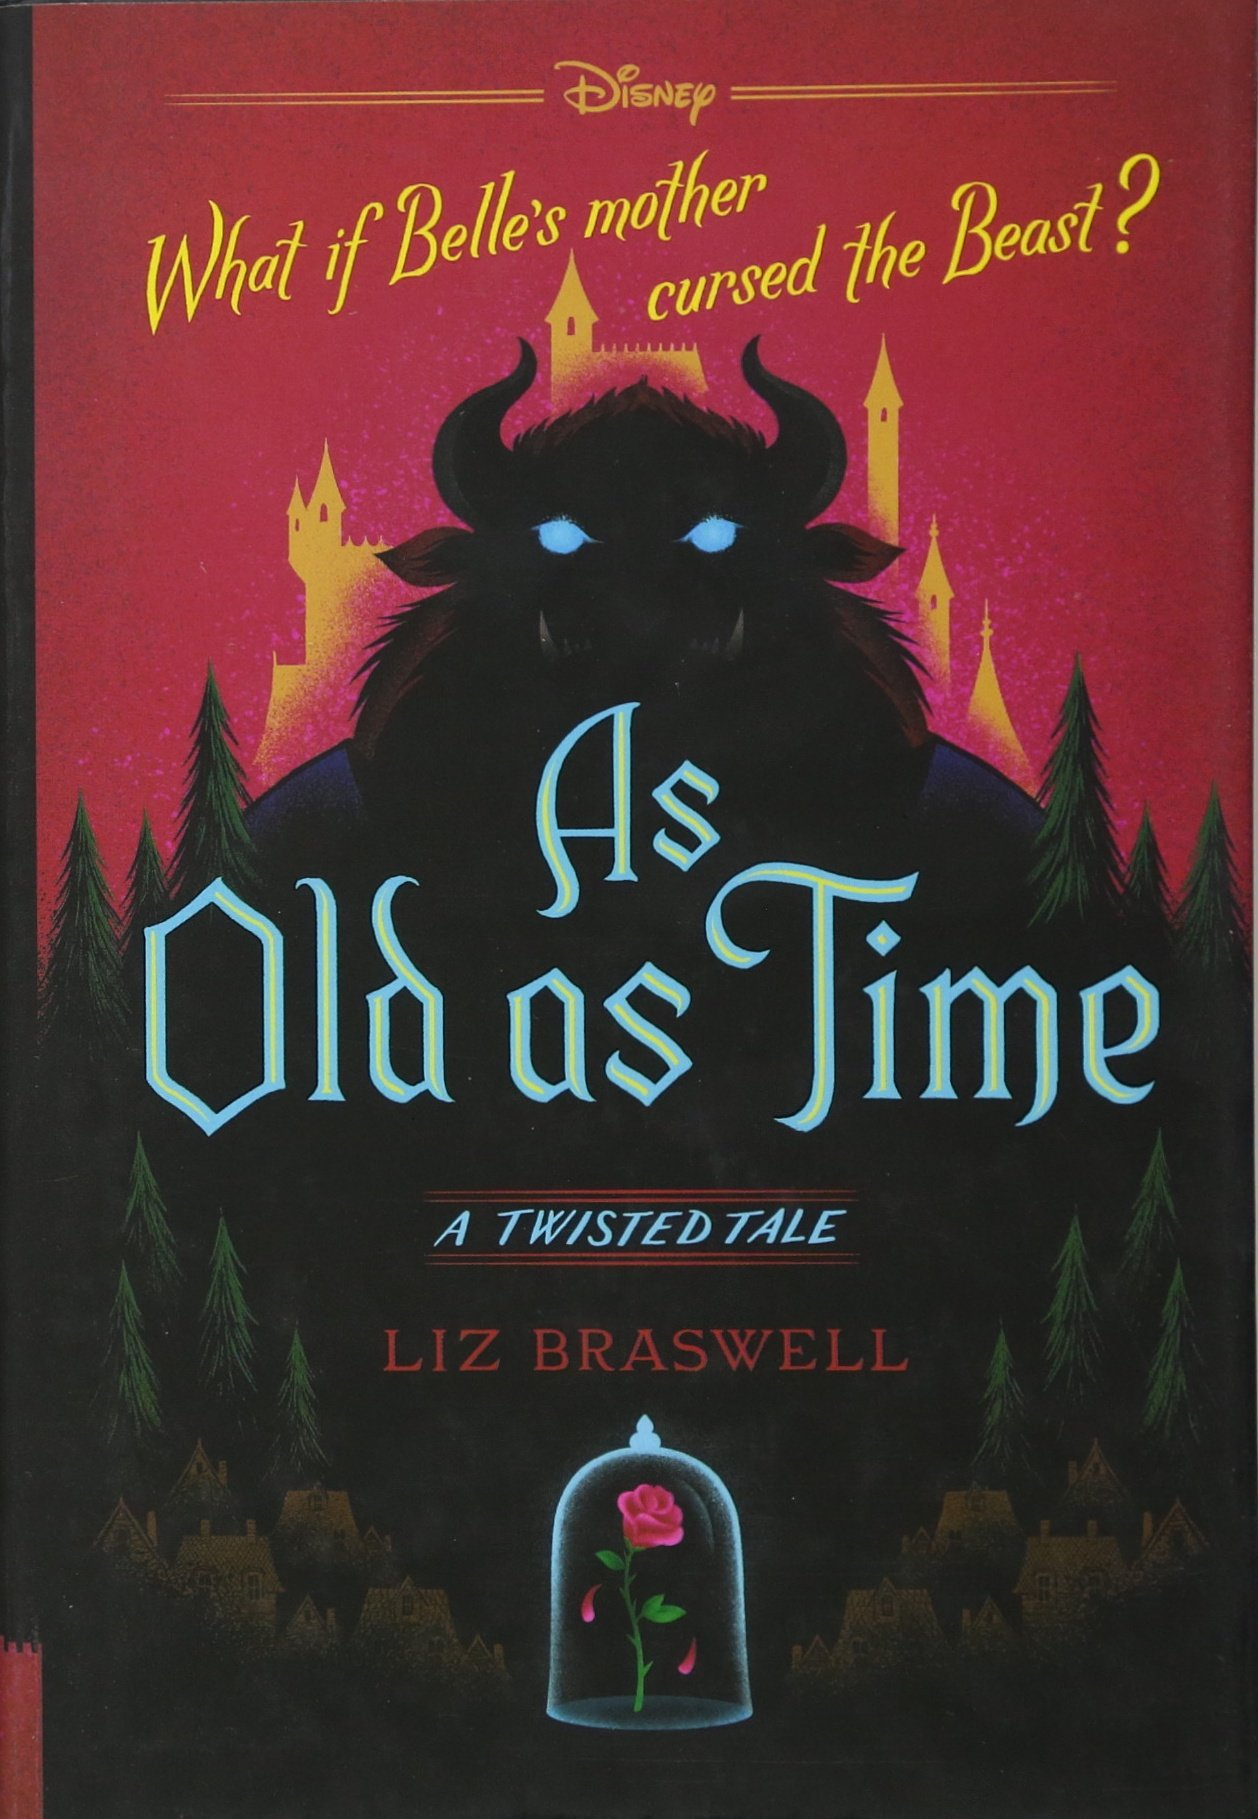 Amazon.fr - As Old as Time: A Twisted Tale - Braswell, Liz - Livres